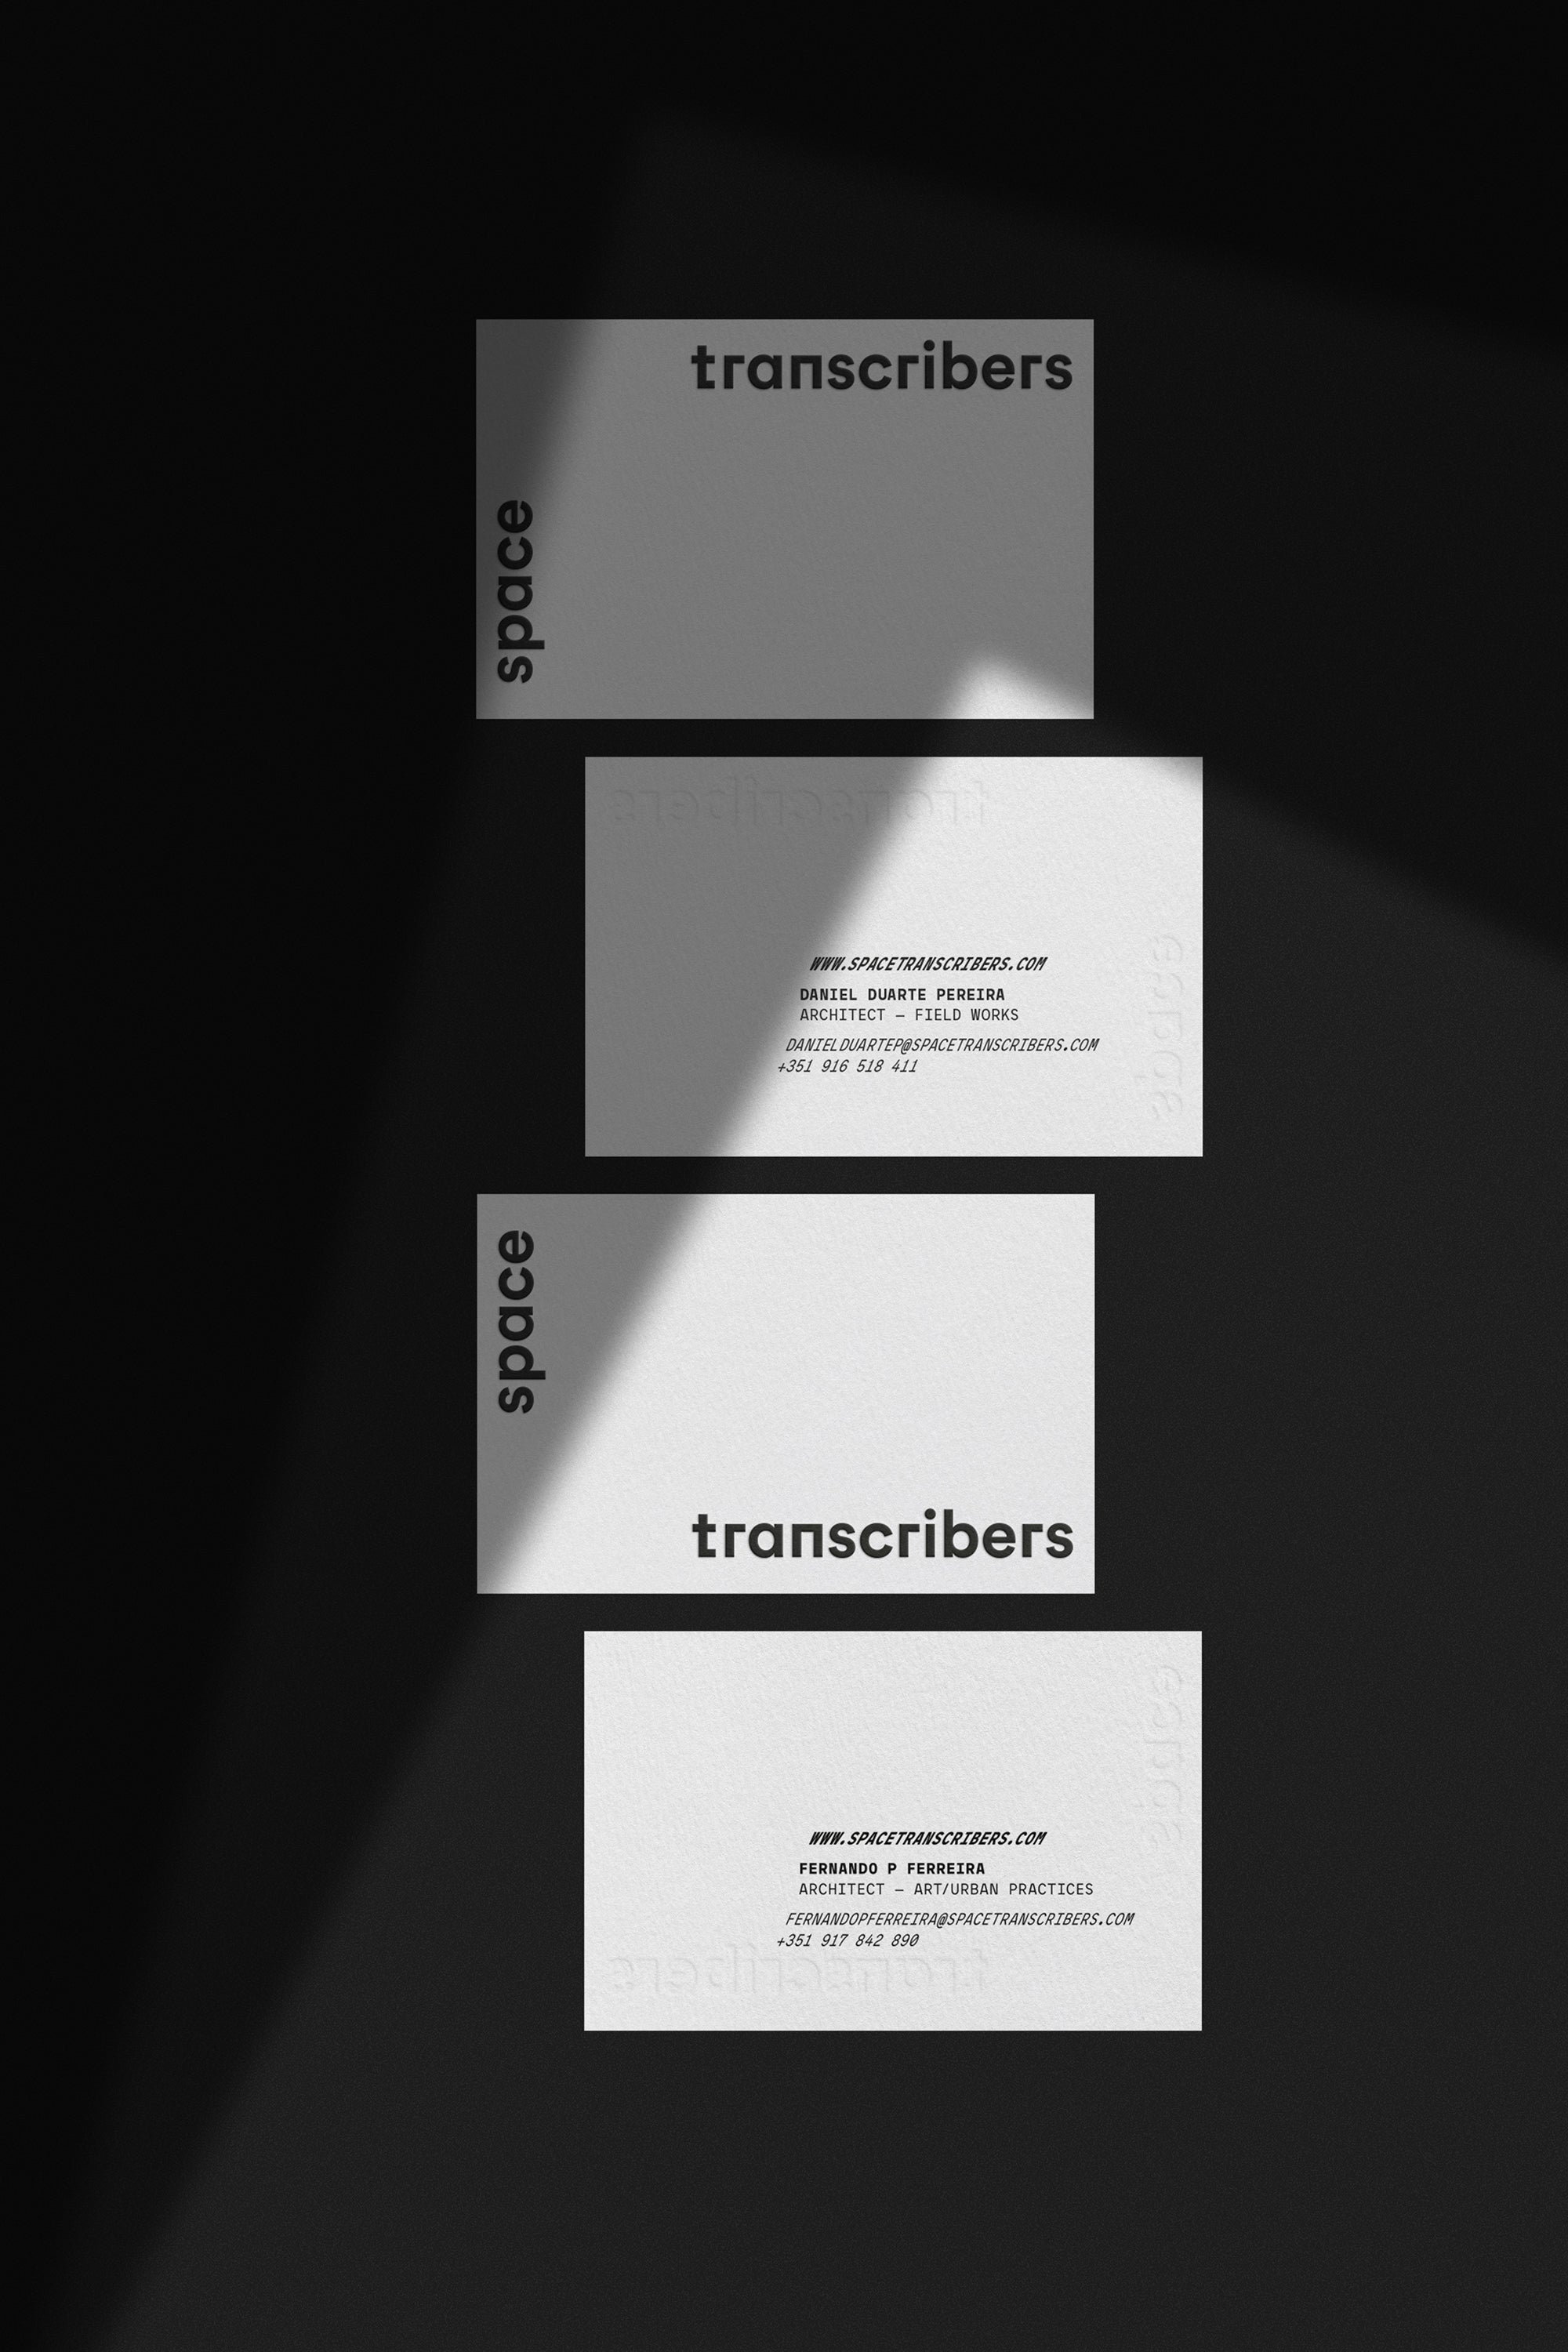 Another Collective: Space Transcribers